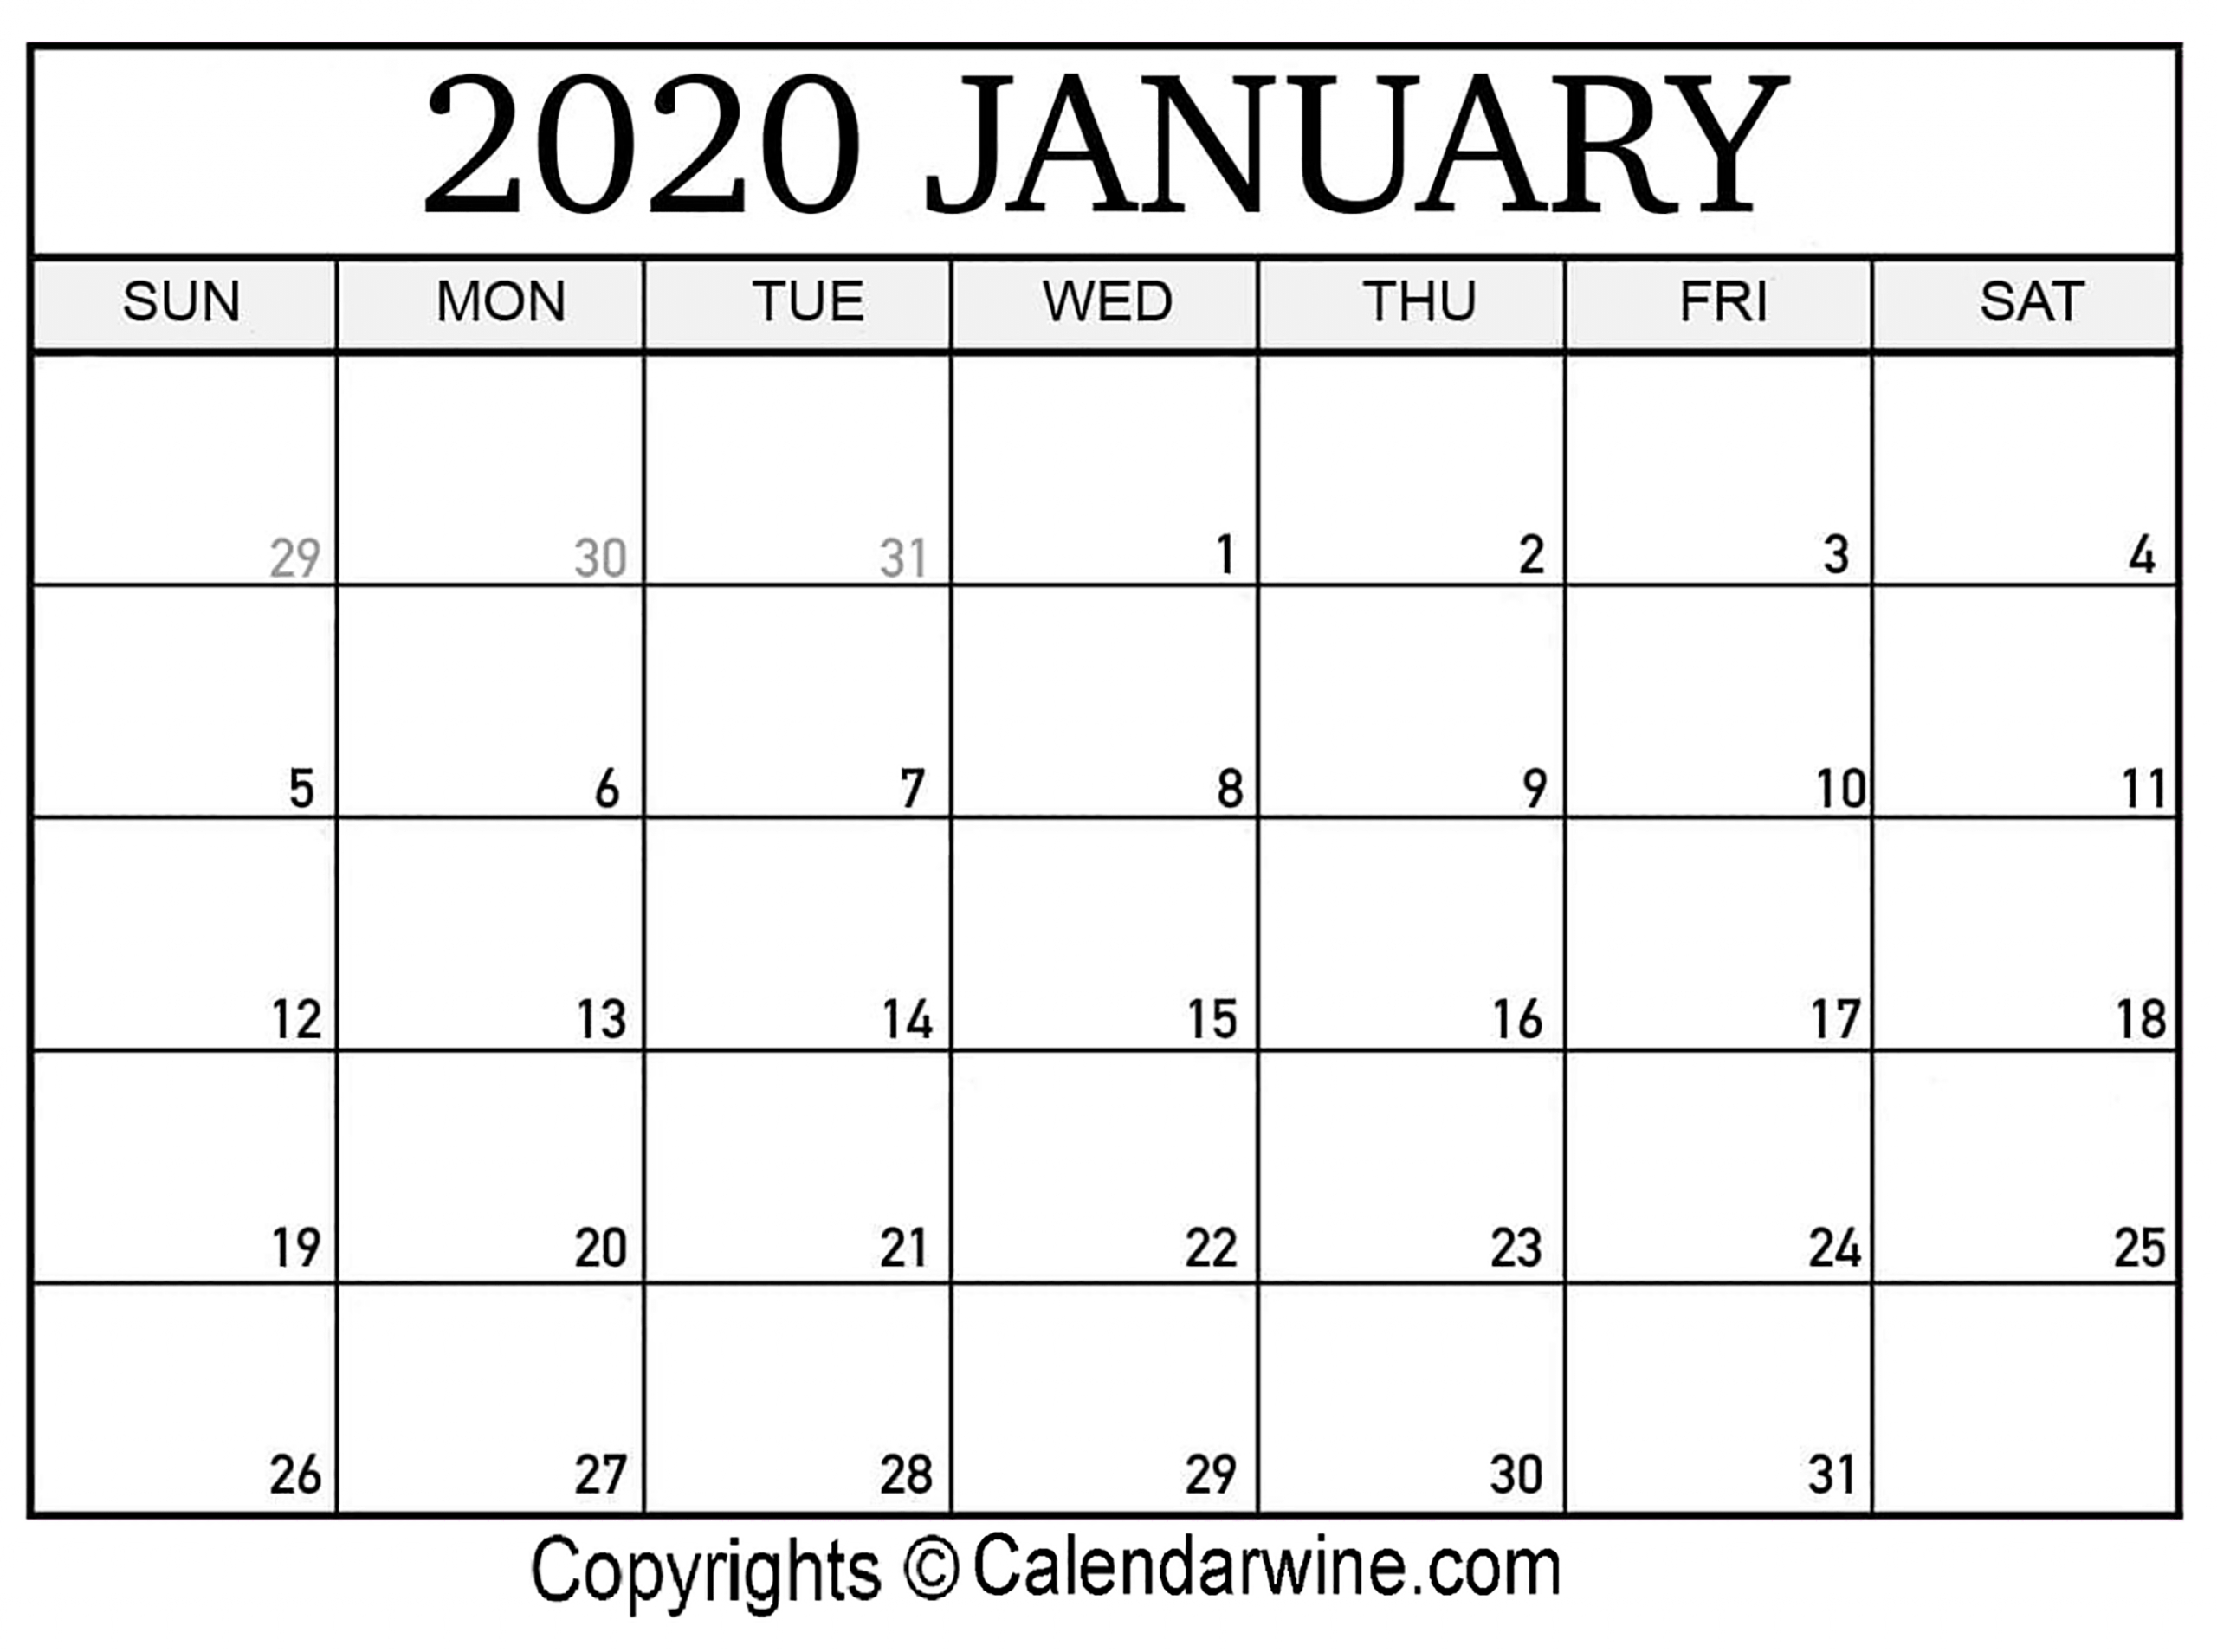 Black January 2020 Calendar Printable | Printable Calendar 2020